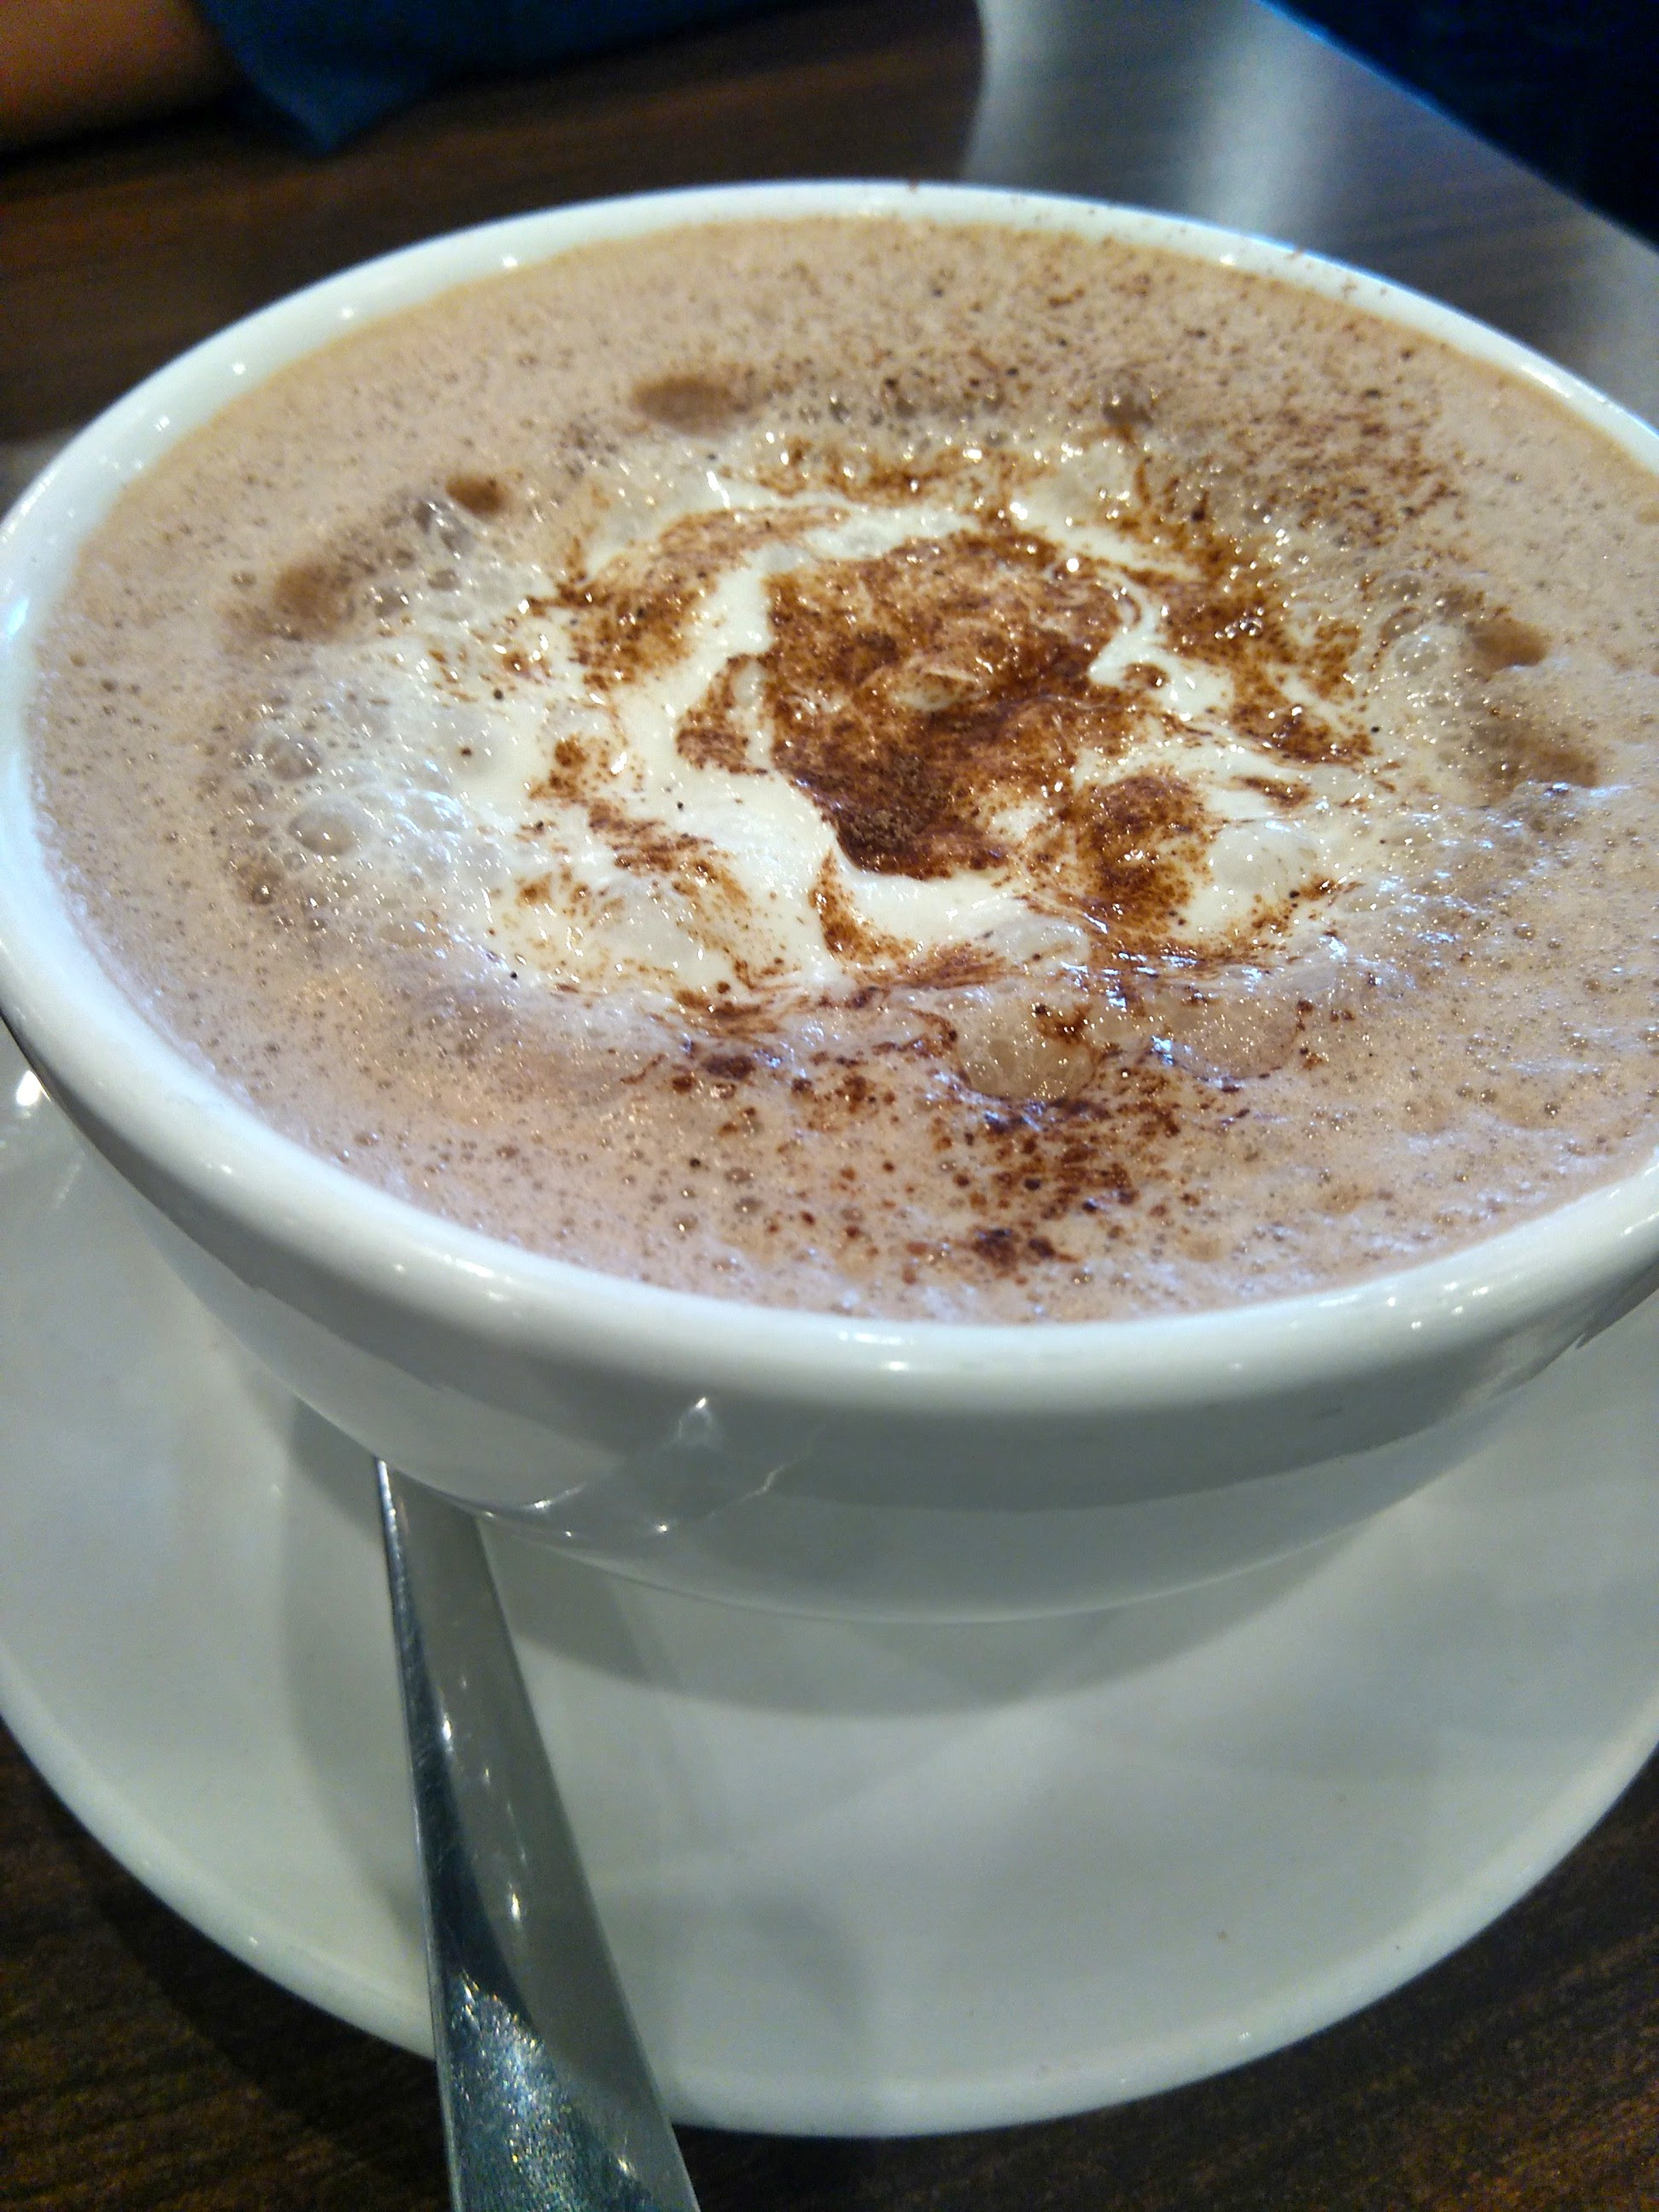 Hot Chocolate at William's Cafe